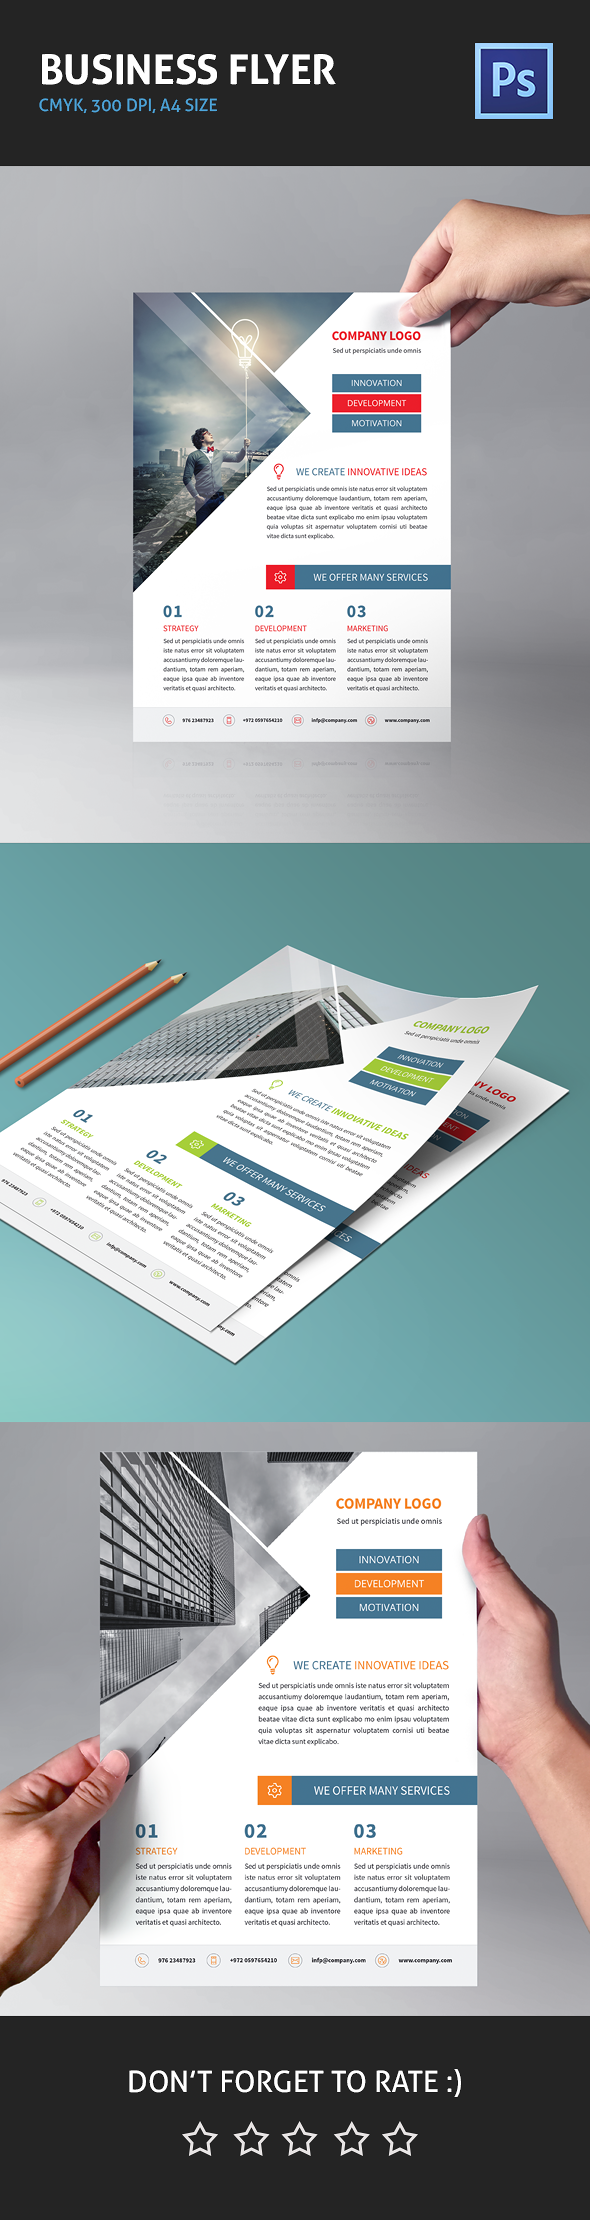 Corporate Business Flyer 01